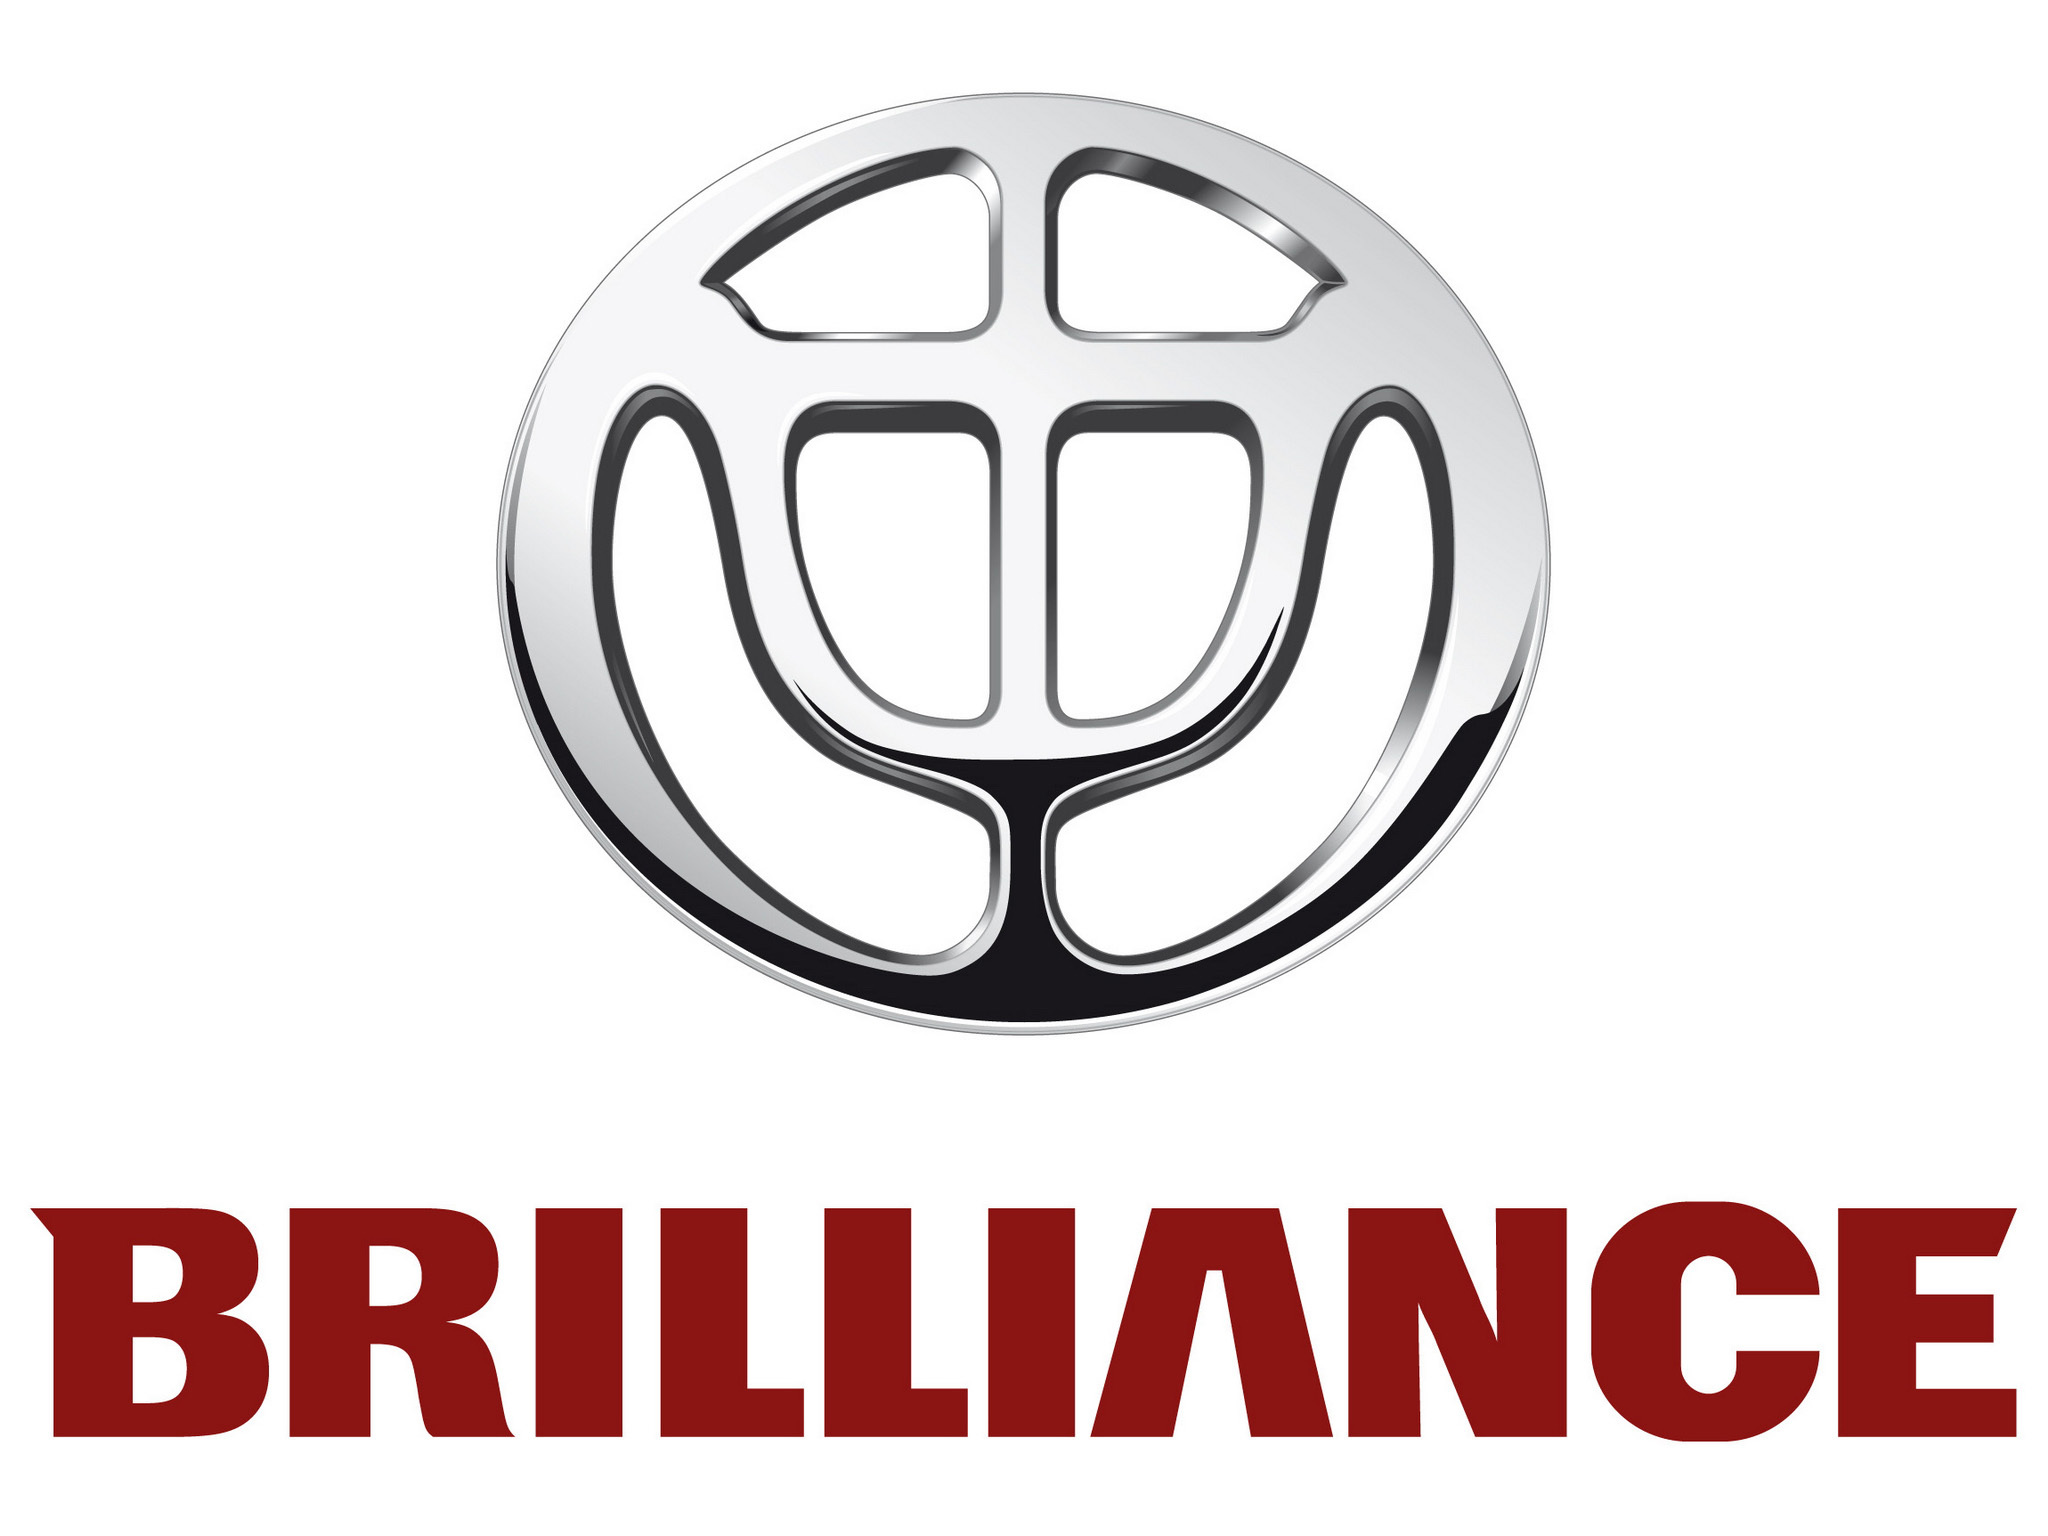 Фильтра Brilliance V5 для Brilliance V5 2011 - towel ethel ренесанс type 2 40х73 cm 100% chl twill 190 c m2 4136513